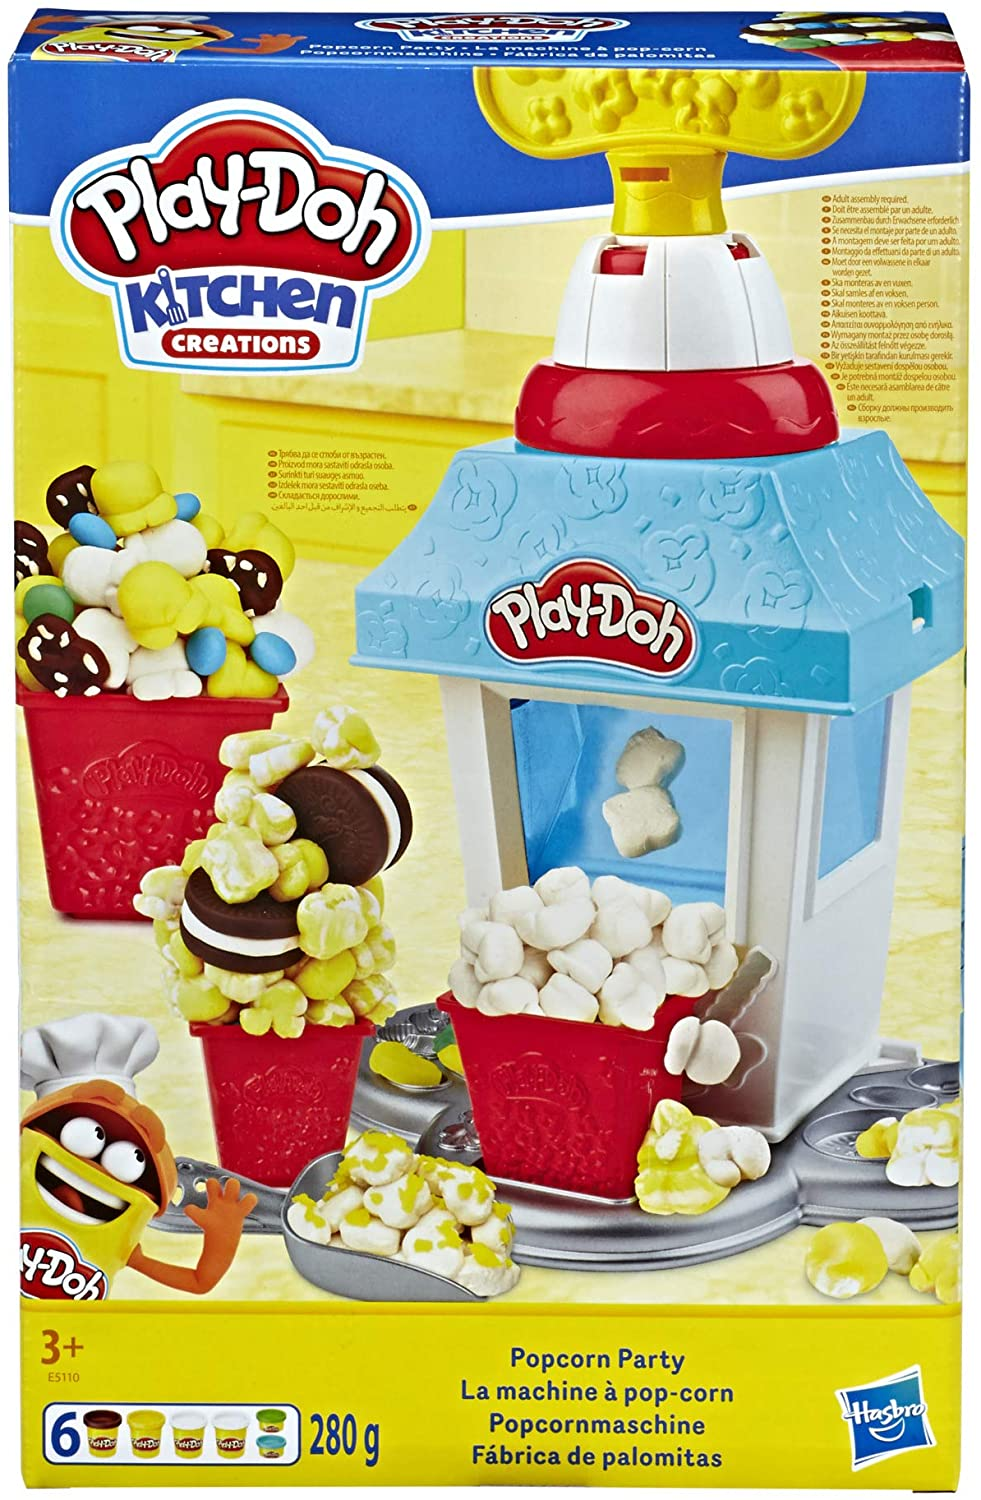 Play-Doh Kitchen Creations Popcorn Party Play